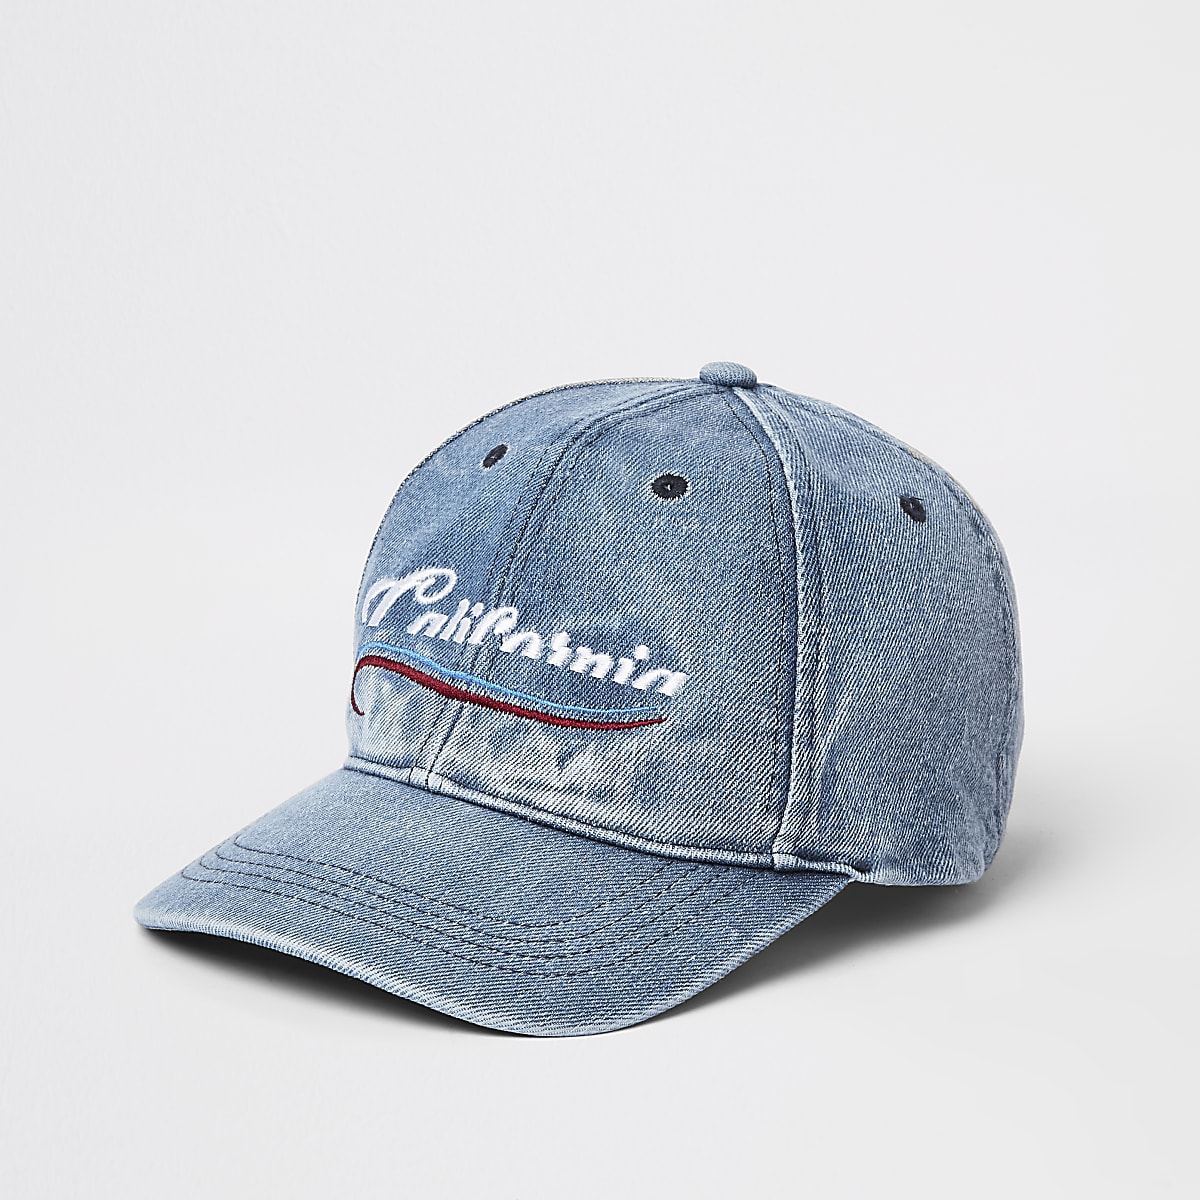 Blue 'California' denim baseball cap